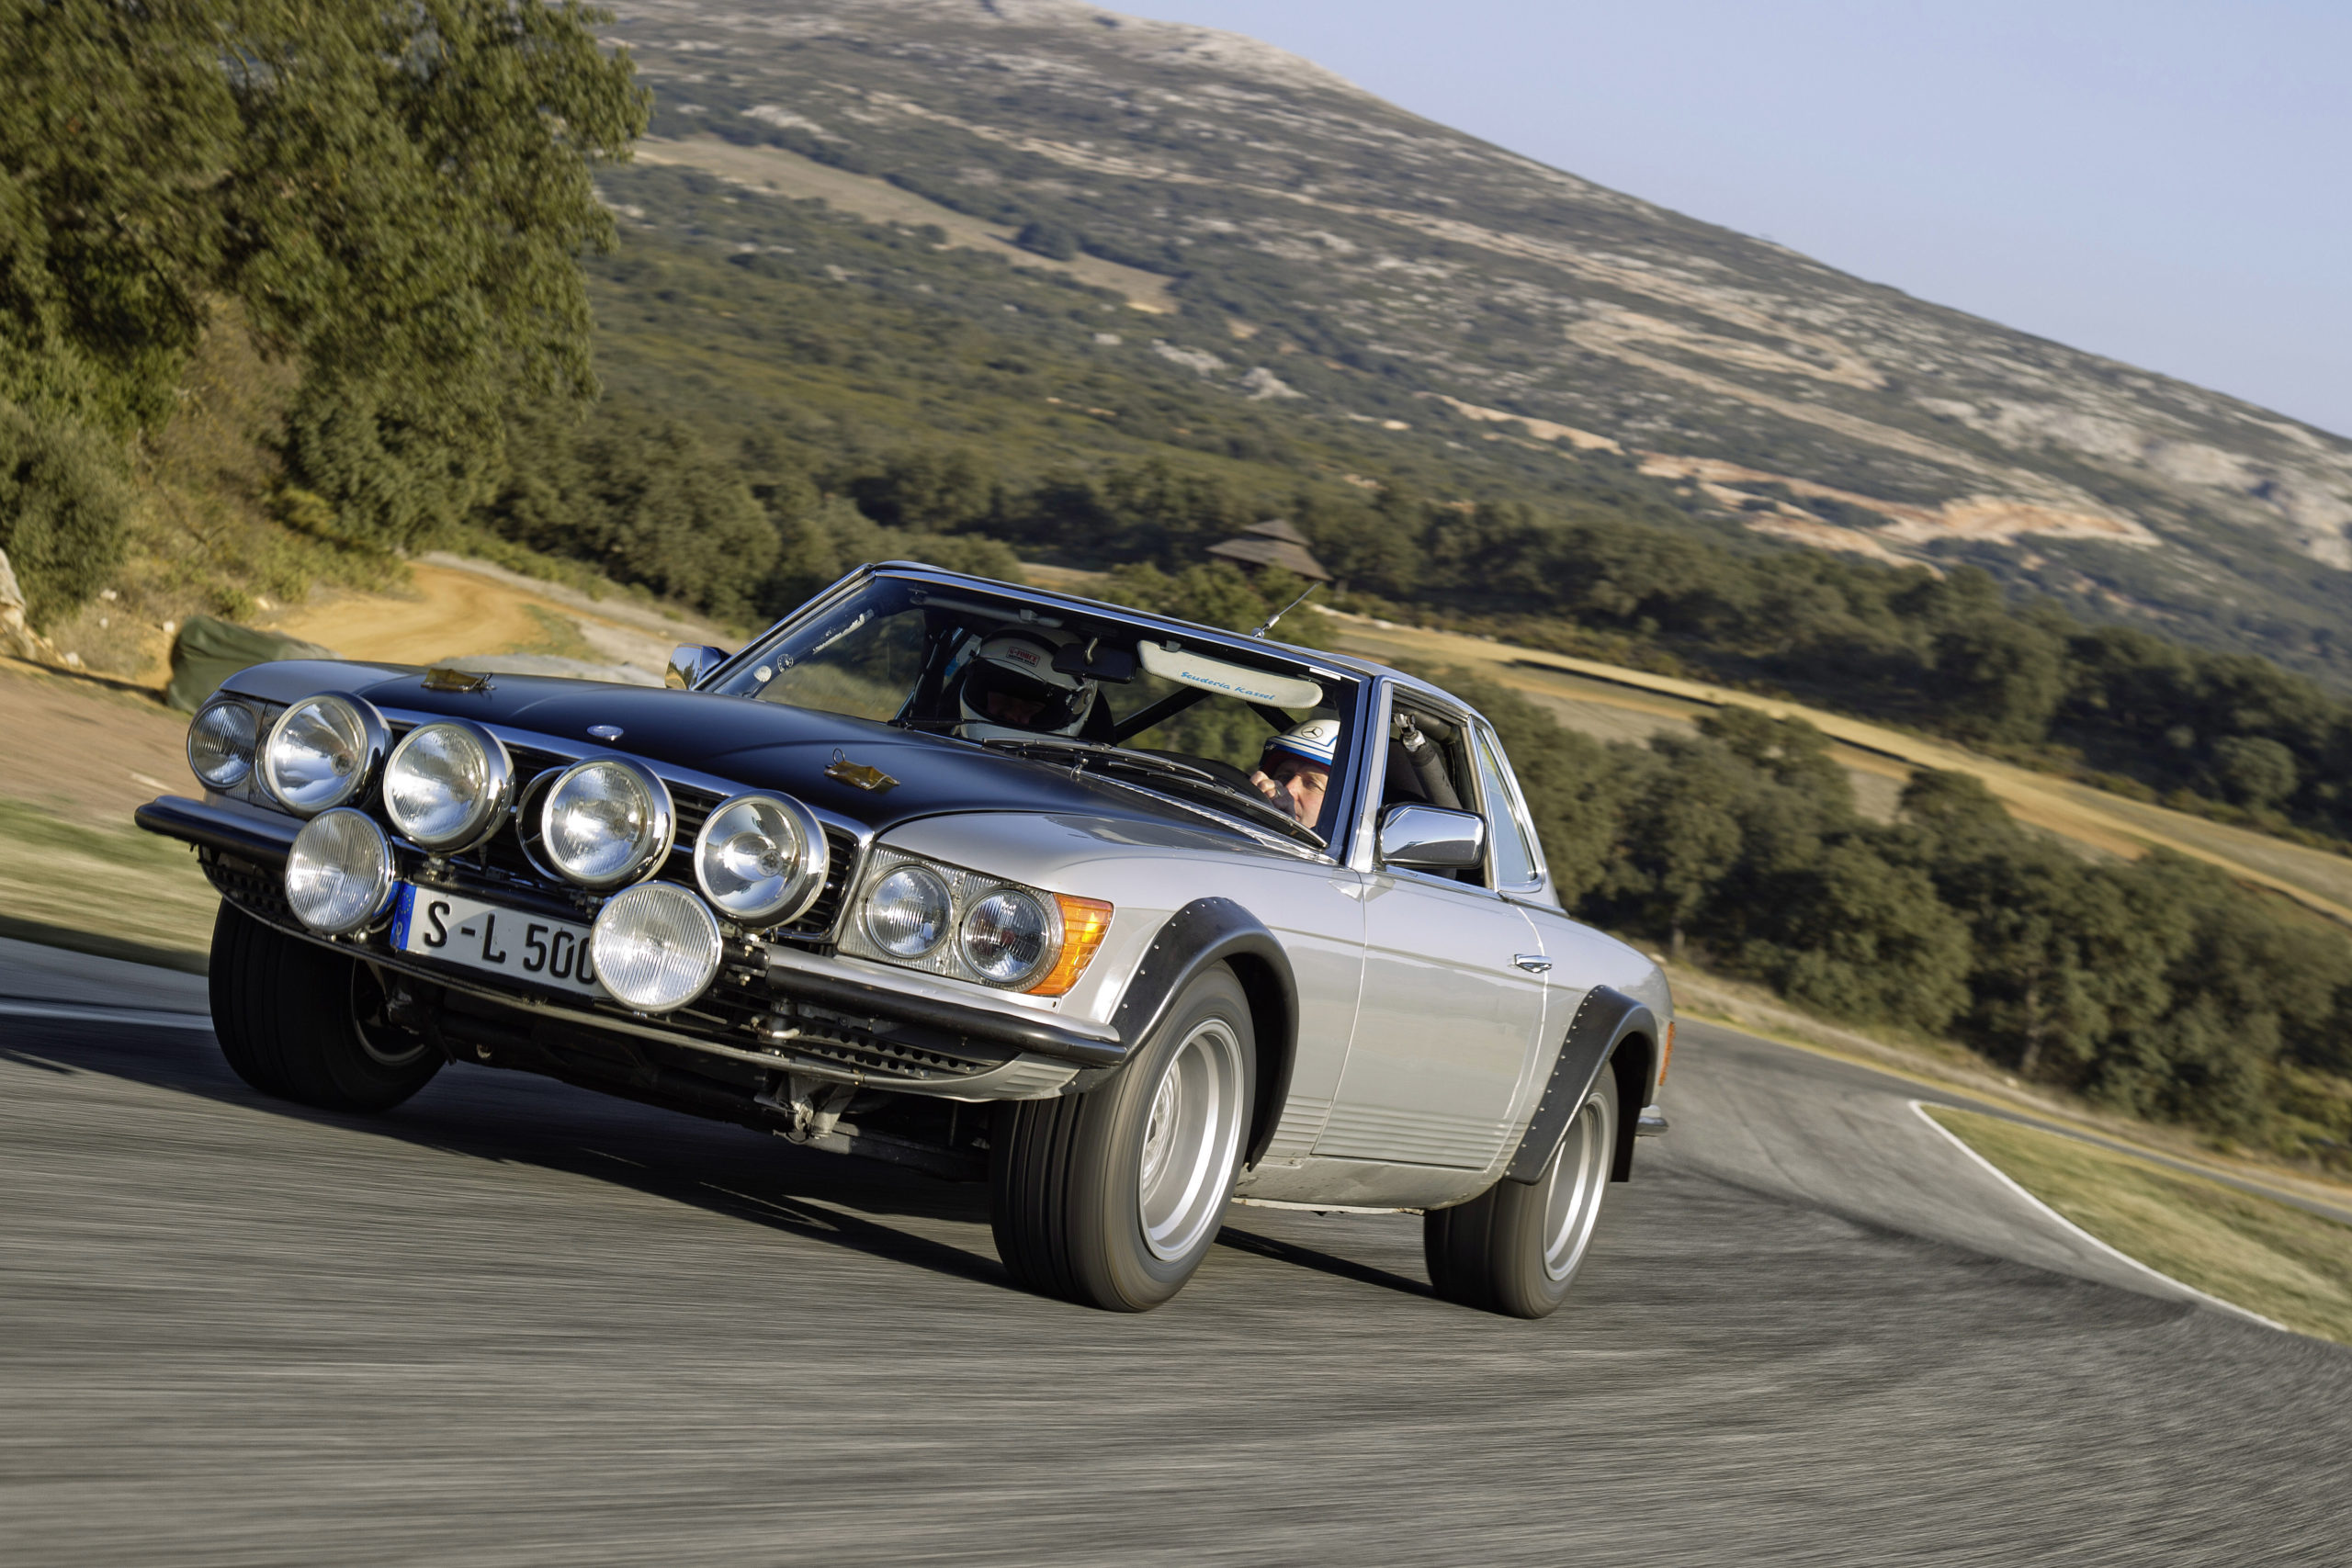 500SL Rally Car built for the 60th Anniversary of the Mercedes-Benz SL in 2012